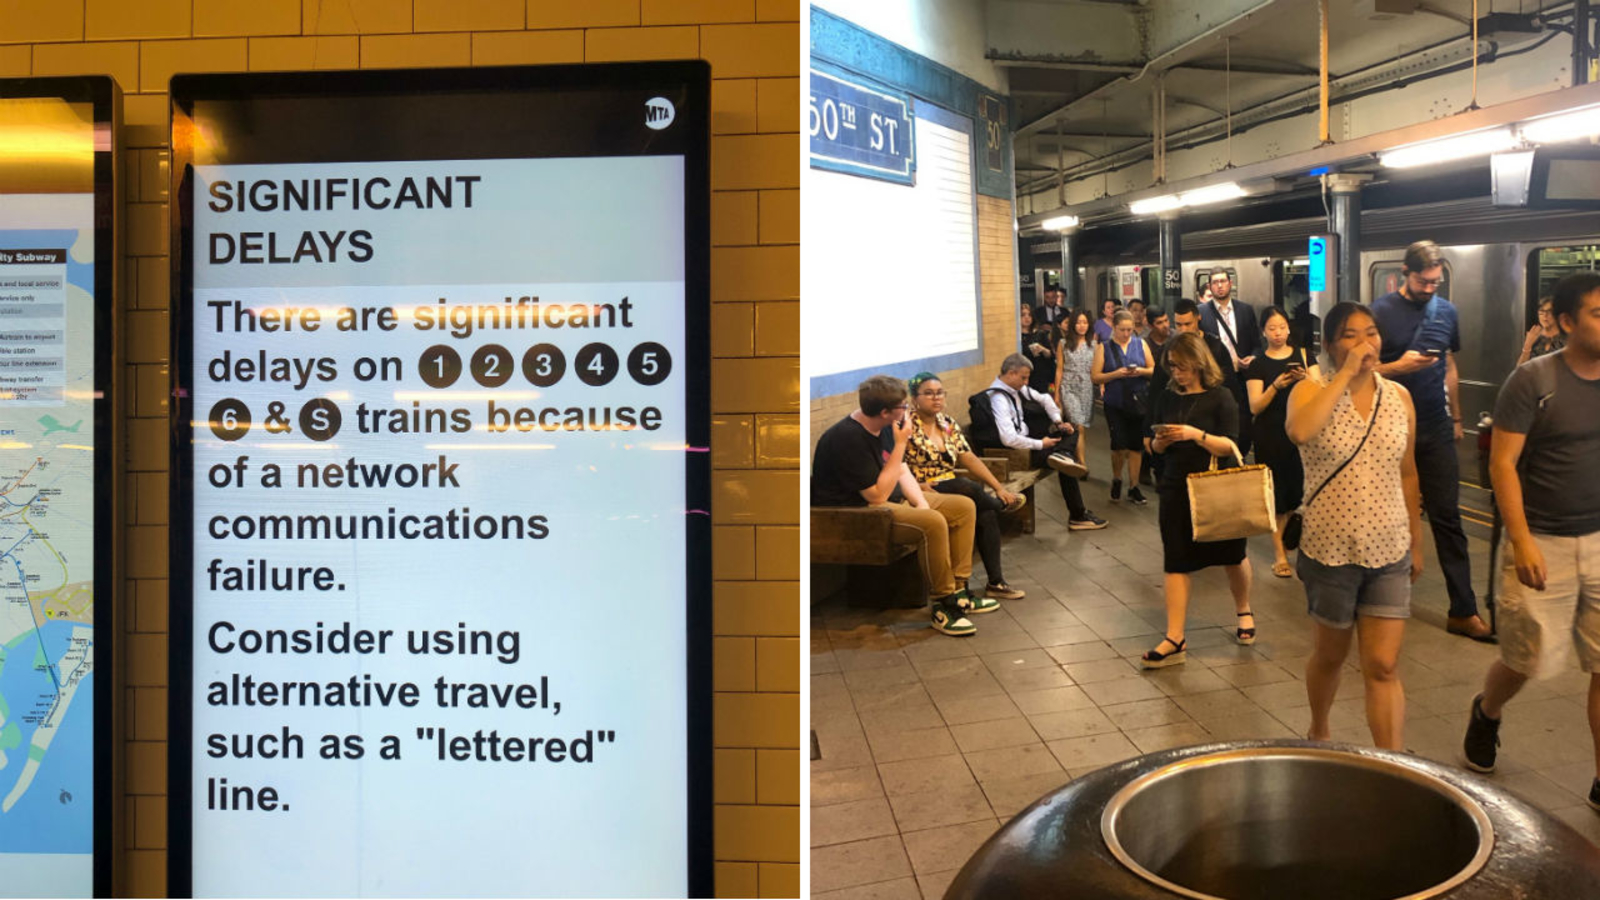 MTA restoring service after 'network communications issue' causes suspensions